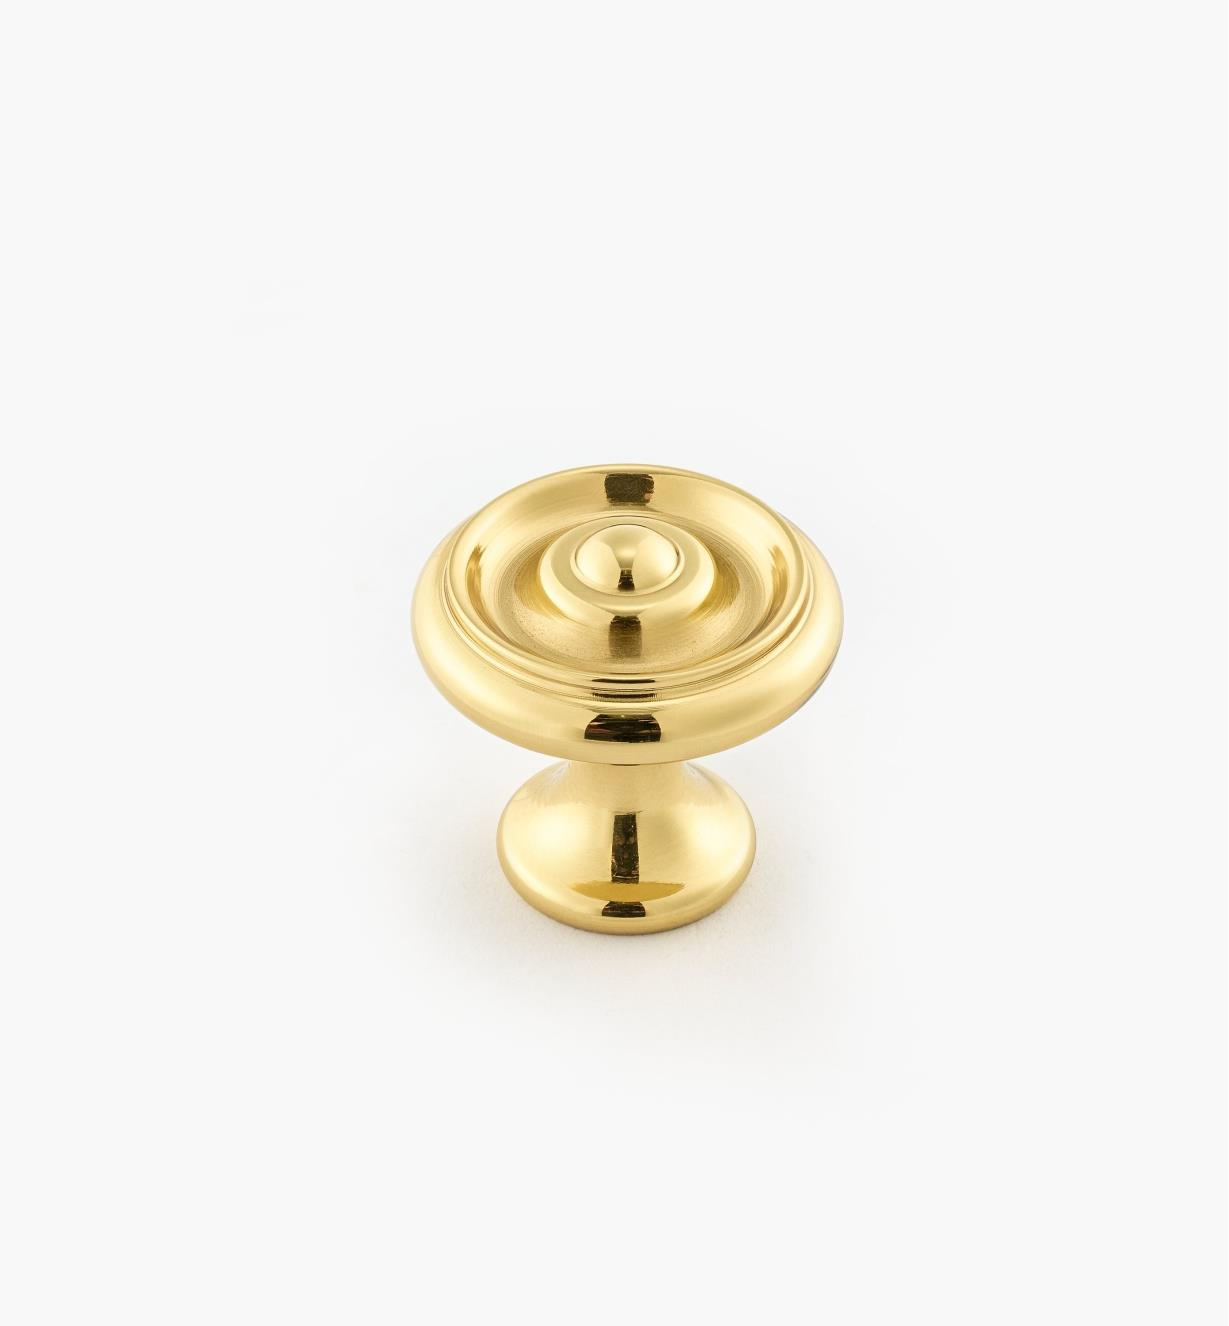 "02W3200 - Polished Brass Suite - 1"" x 7/8"" Turned Brass Raised Knob"